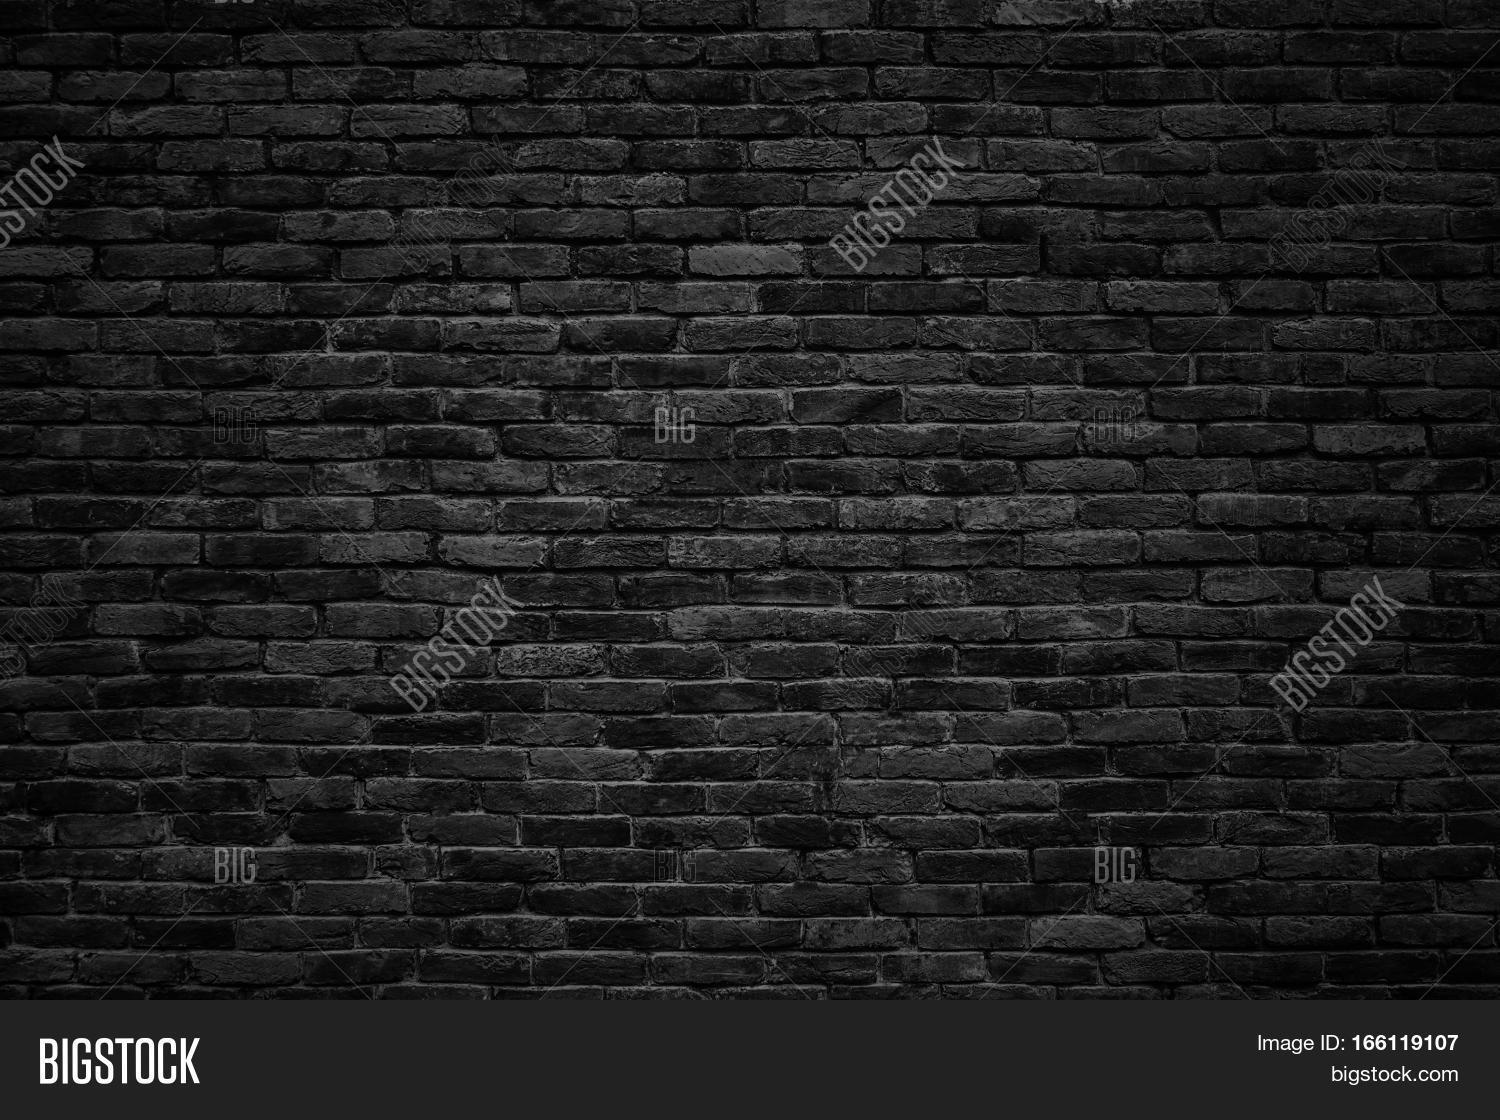 Black Brick Wall Black Brick Wall Dark Image And Photo Free Trial Bigstock